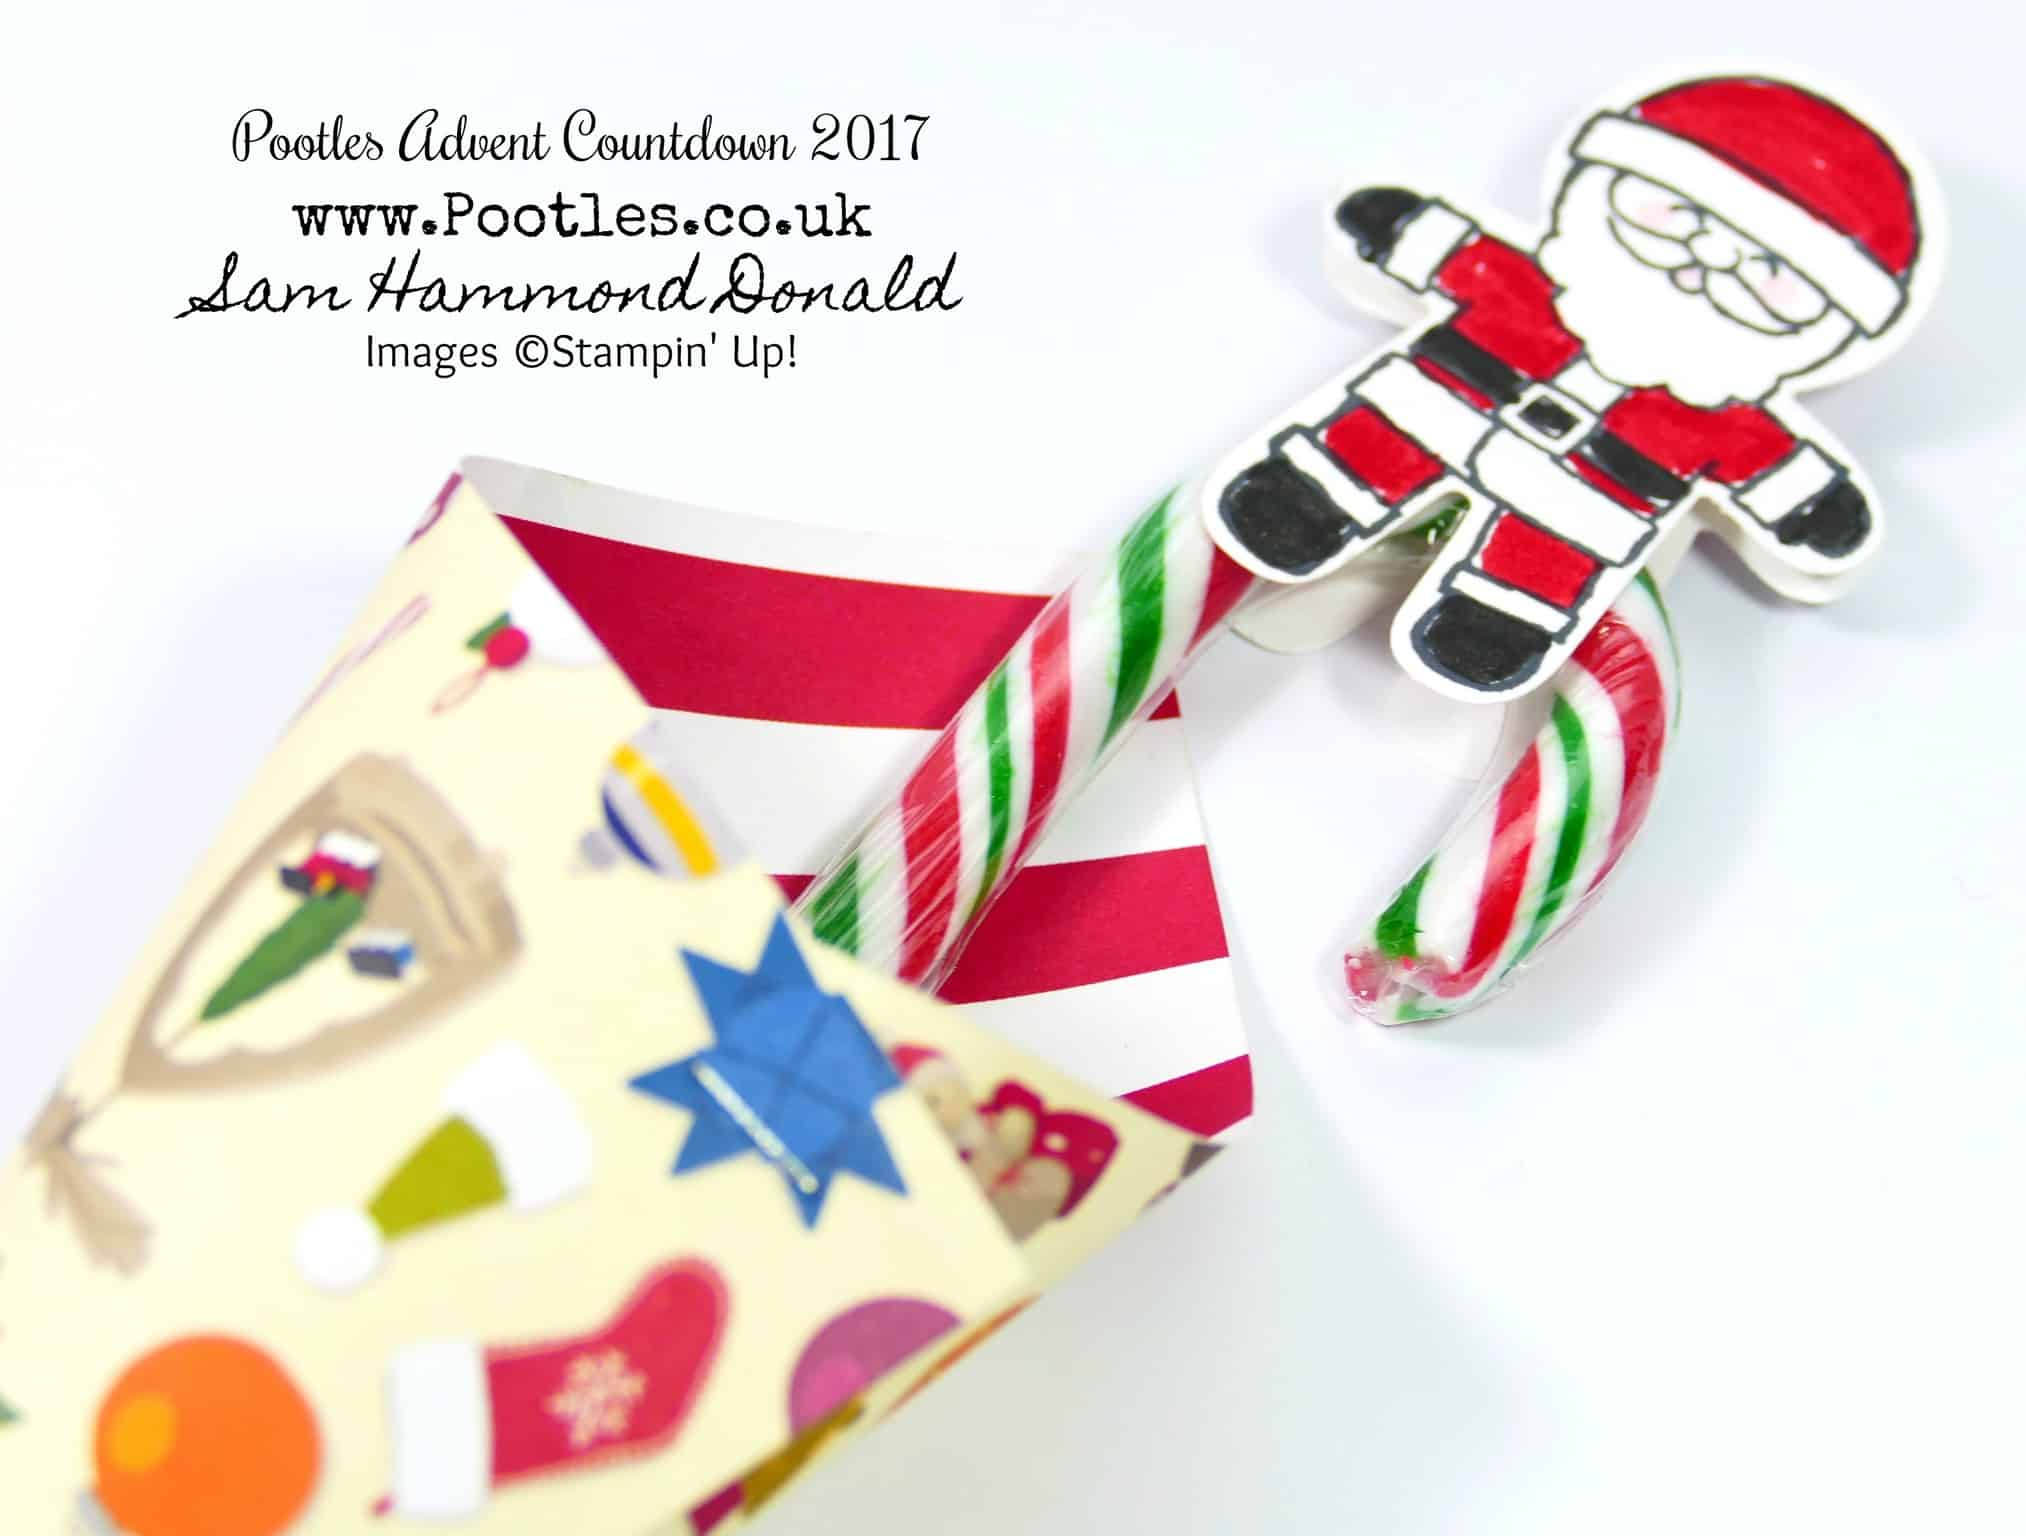 Pootles Advent Countdown 2017 #23 Oliver's Candy Cane Pop Up Gift